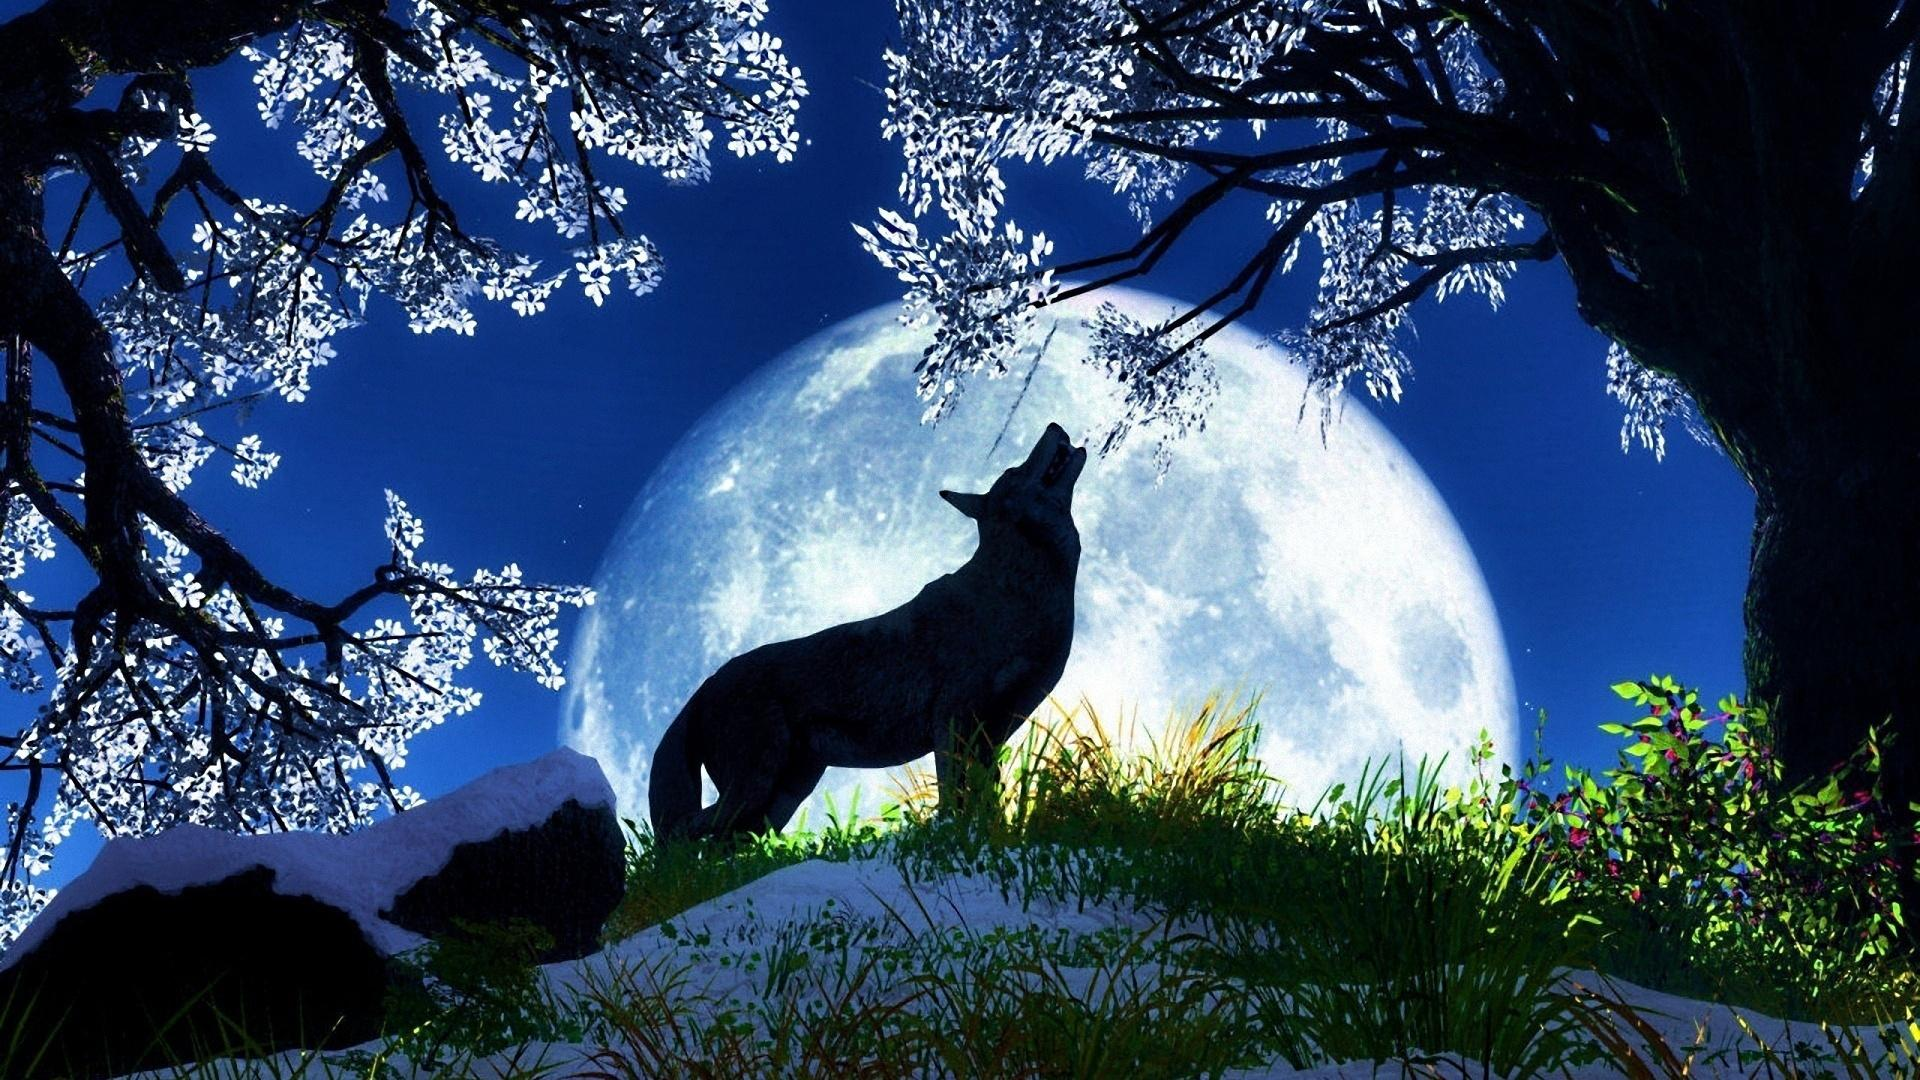 Moon Wallpapers Hd Group 1920x1080